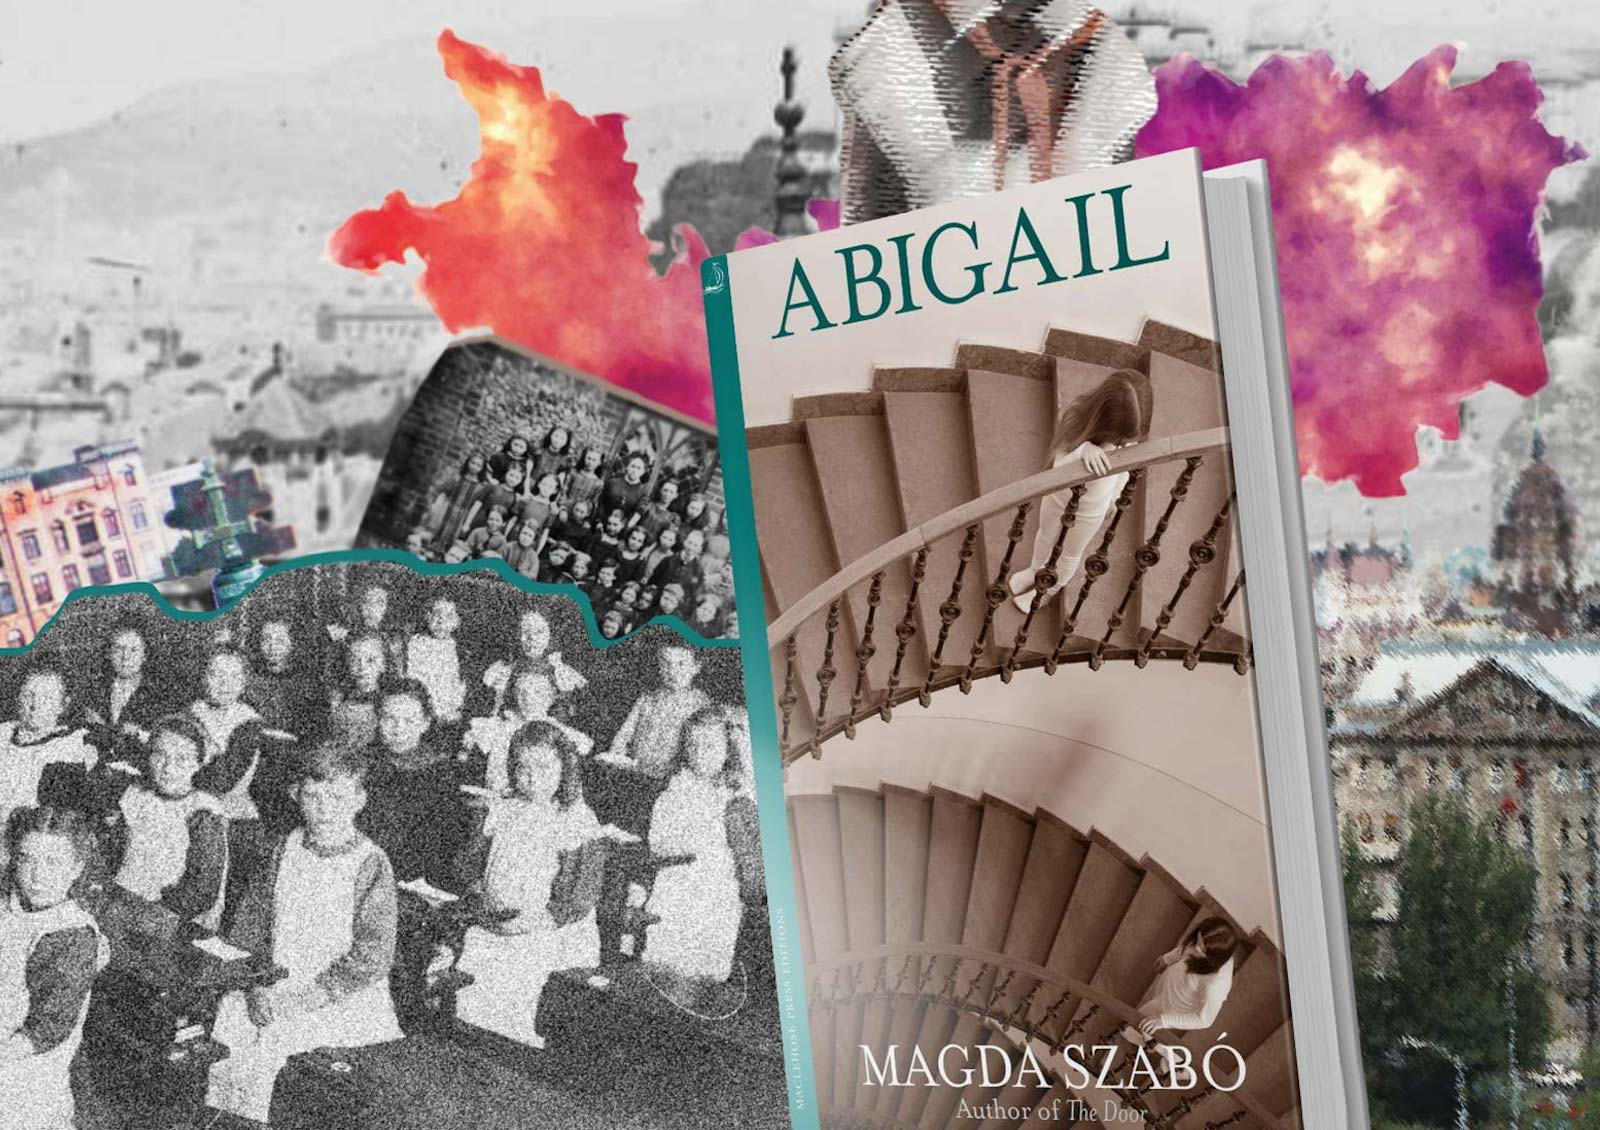 Magda Szabó's cult novel Abigail is an adventurous tale of teenage friendship in wartime Hungary